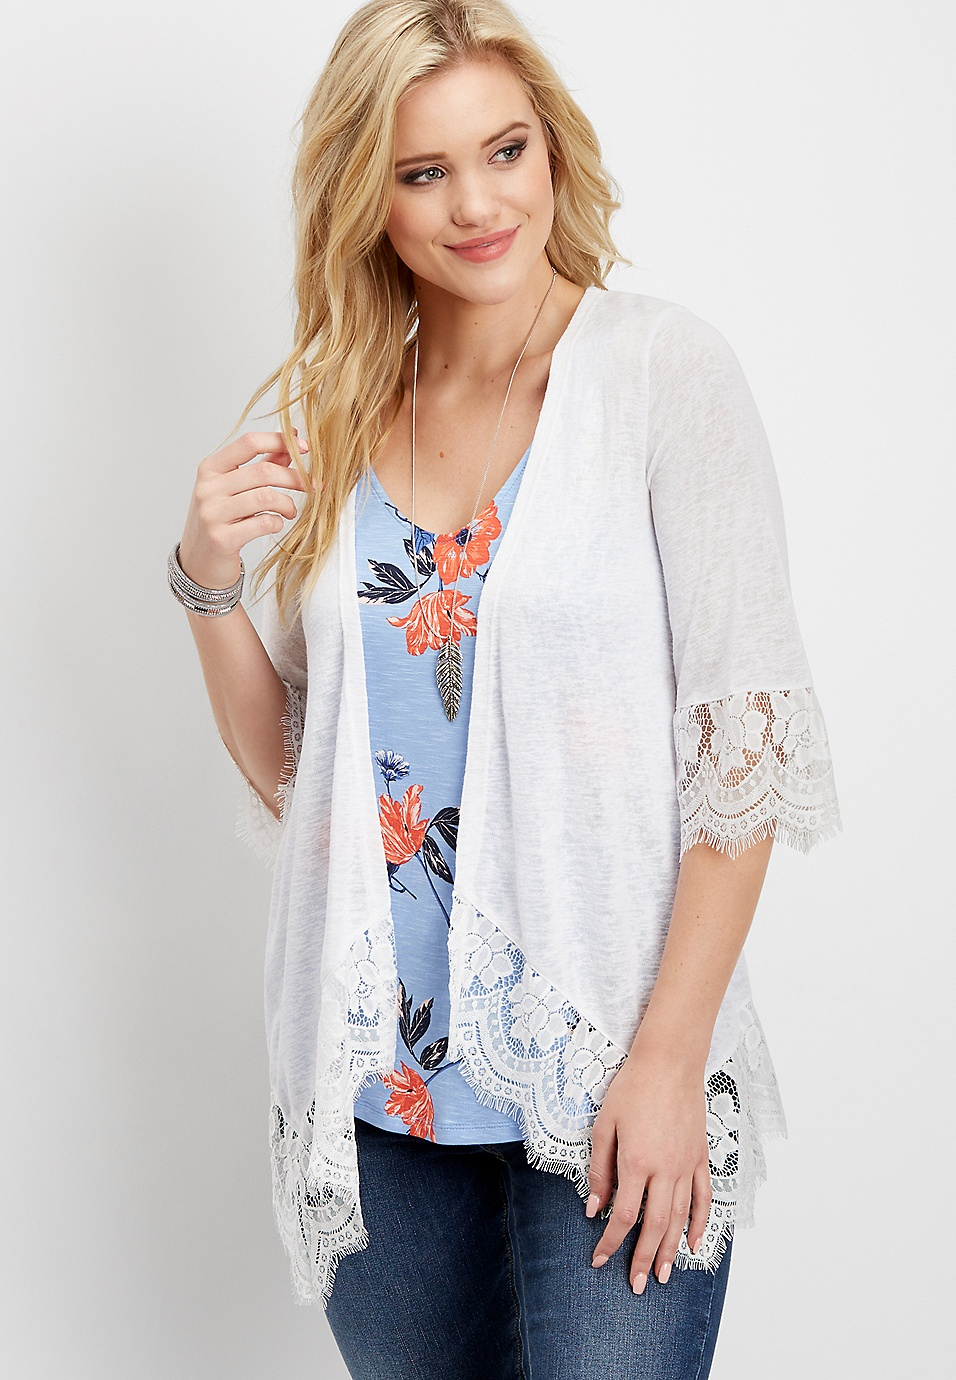 Cheap Get Authentic Lace Hem Cardigan Maurices Buy Cheap New Styles Free Shipping Many Kinds Of Best Wholesale For Sale Outlet Prices qI8umE4CX2